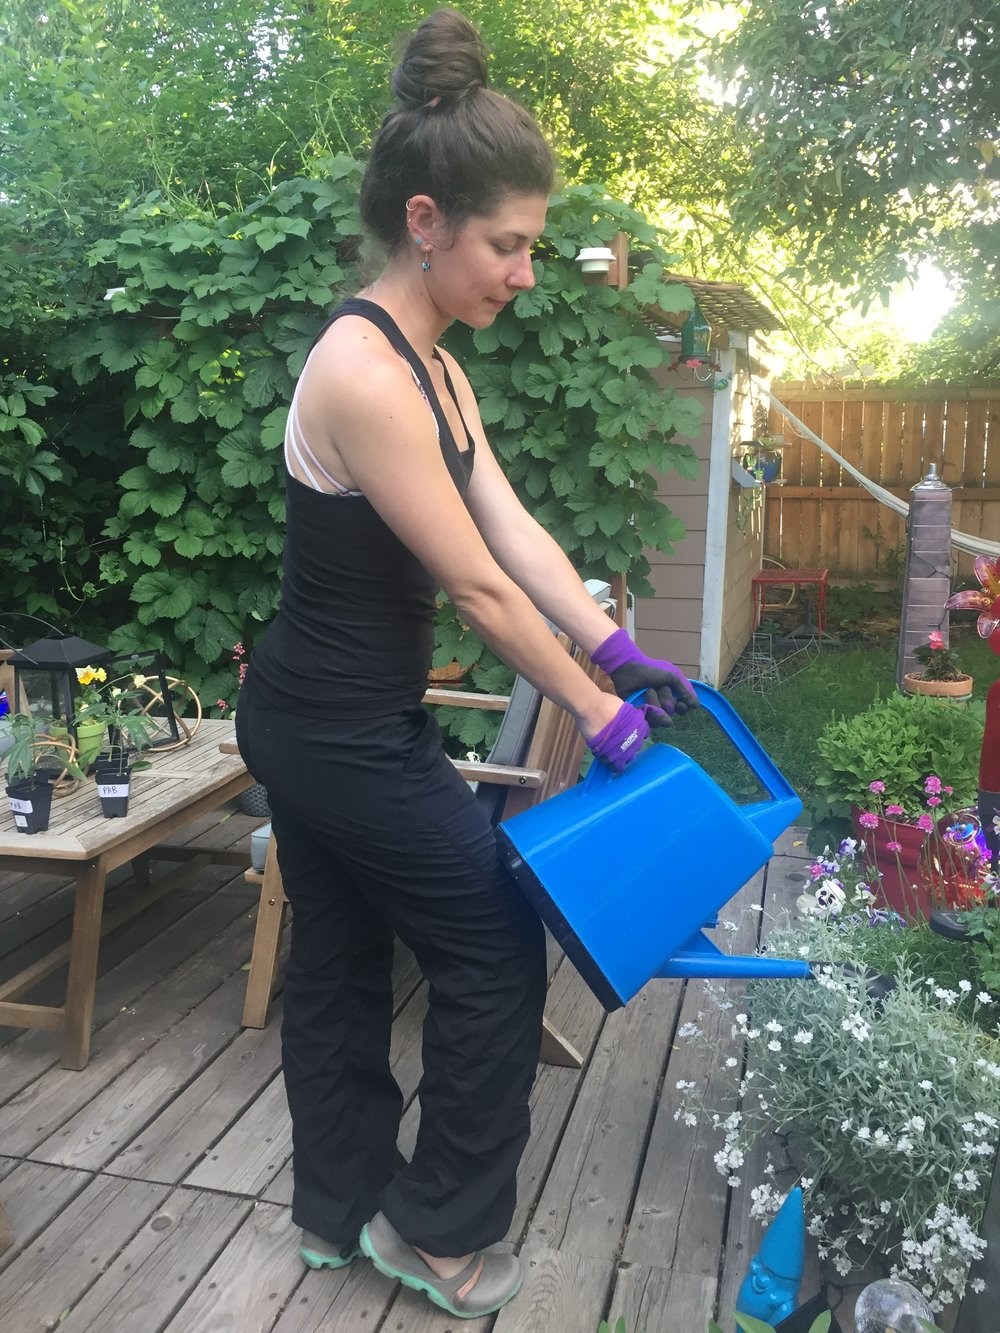 - When using a watering can, start pouring the water out by bracing it against a knee or thigh to support the weight of the watering can in a position that won't pull on the neck or lower back.